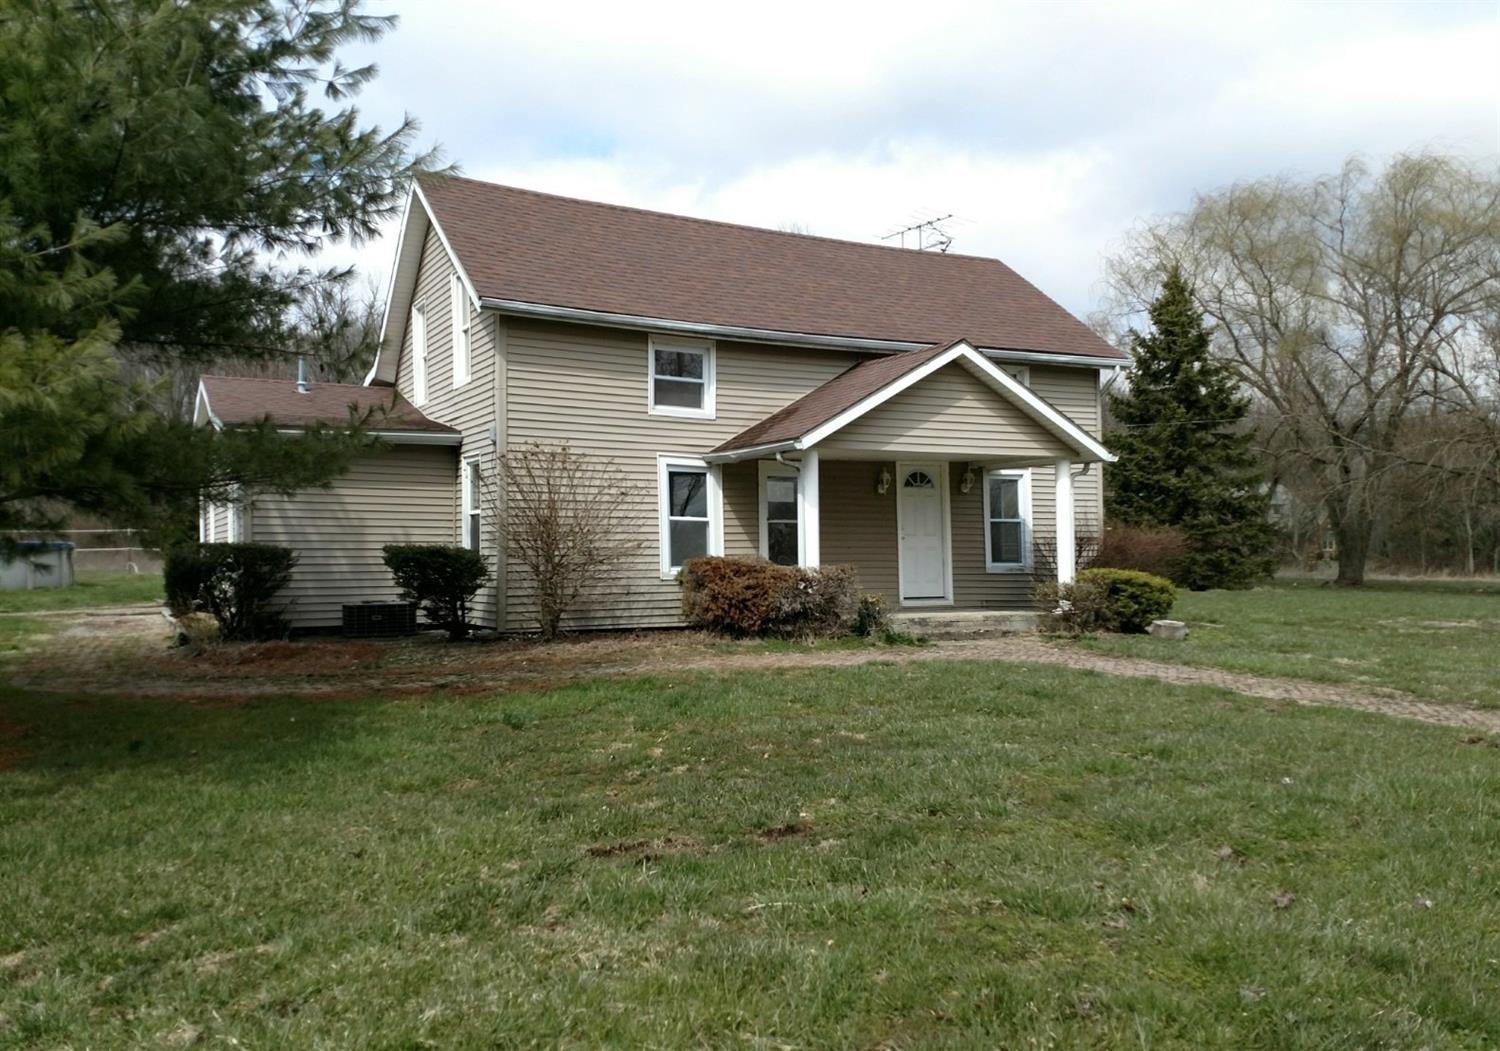 St rt tate twp oh listing details mls